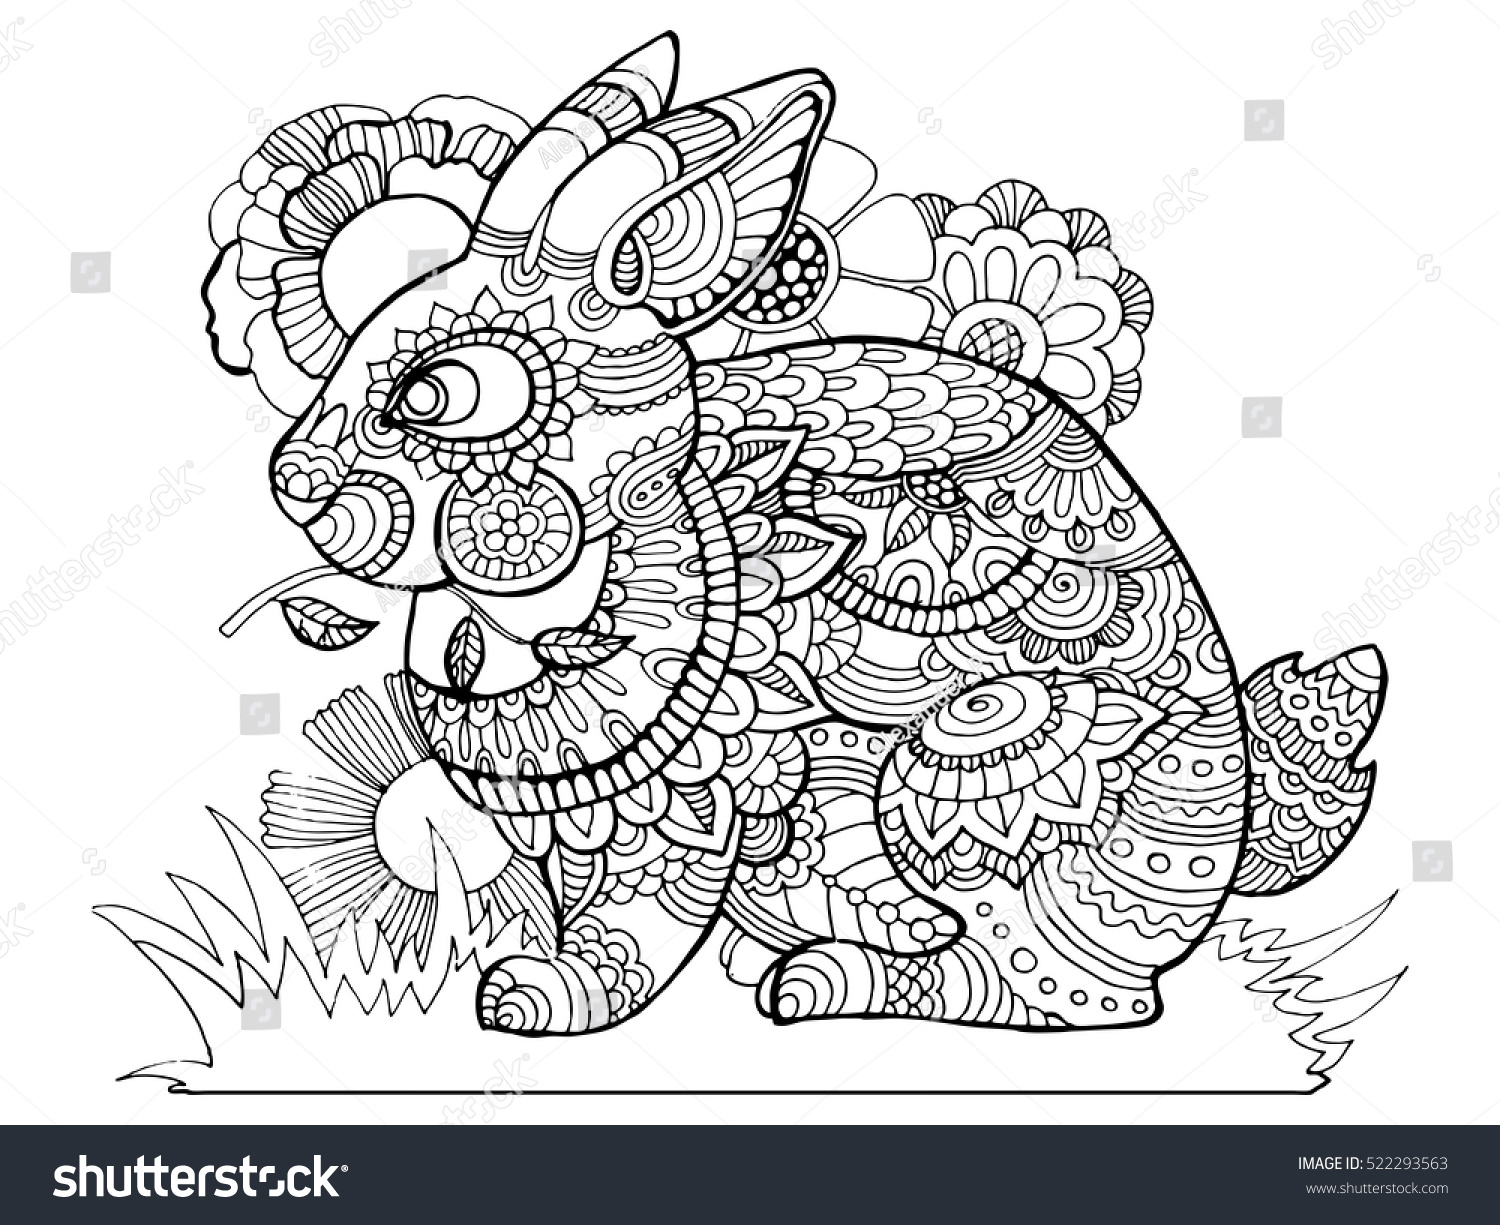 coloring book rabbit pictures : Rabbit Bunny Coloring Book For Adults Vector Illustration Anti Stress Coloring For Adult